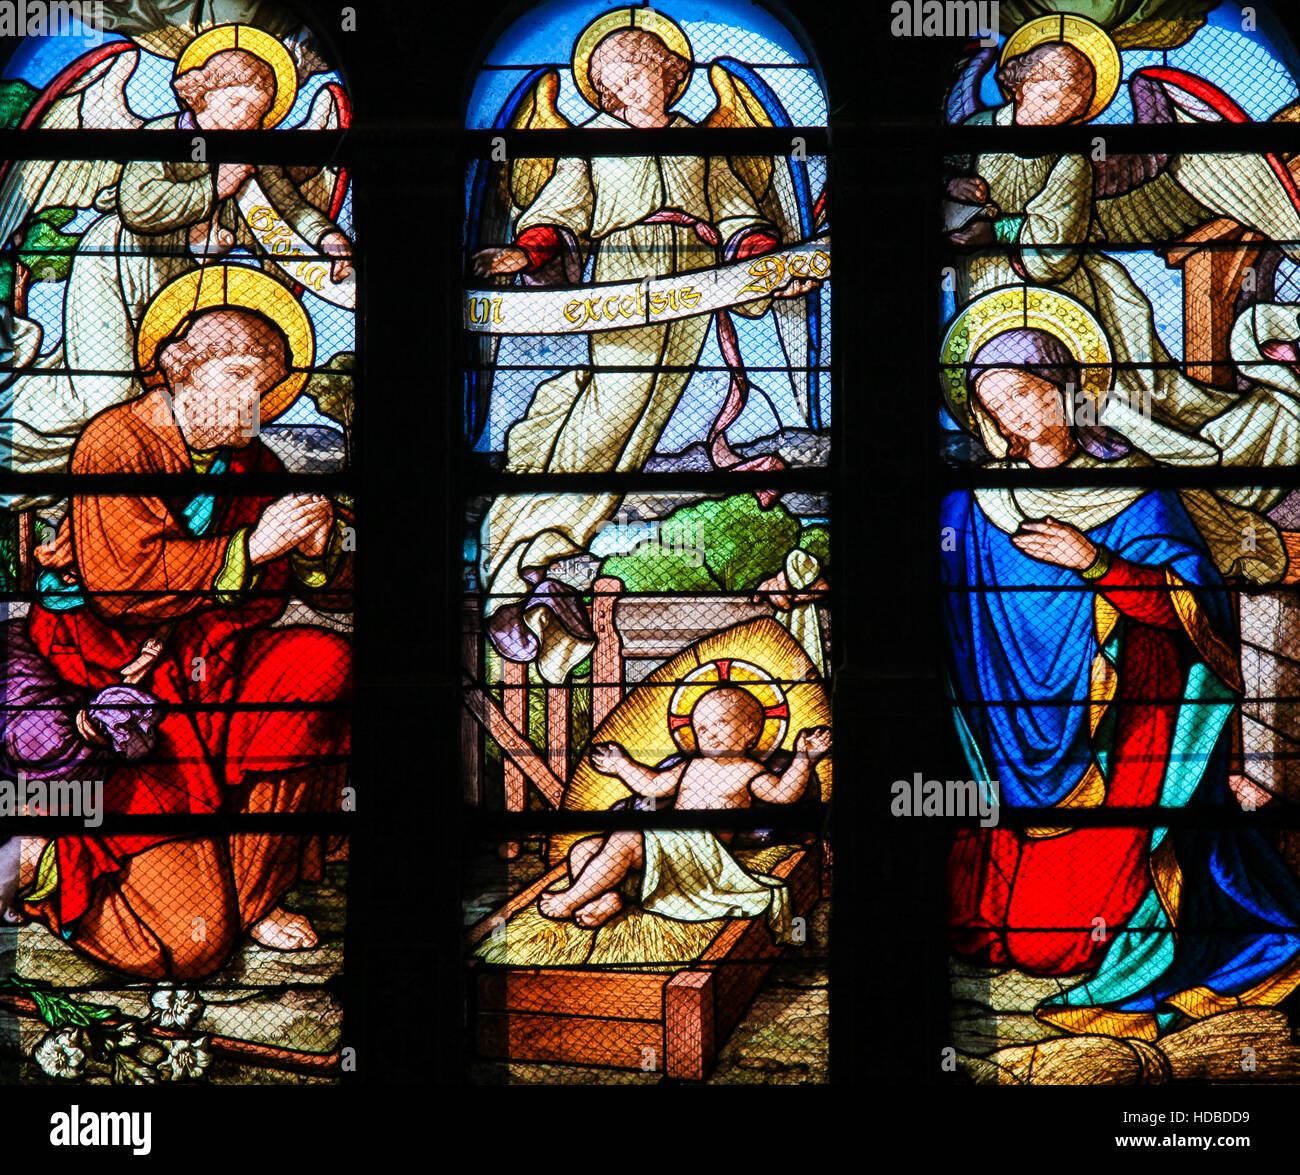 Stained Glass in Sainte Eustache Church in Paris, France, depicting a Nativity Scene at Christmas Stock Photo